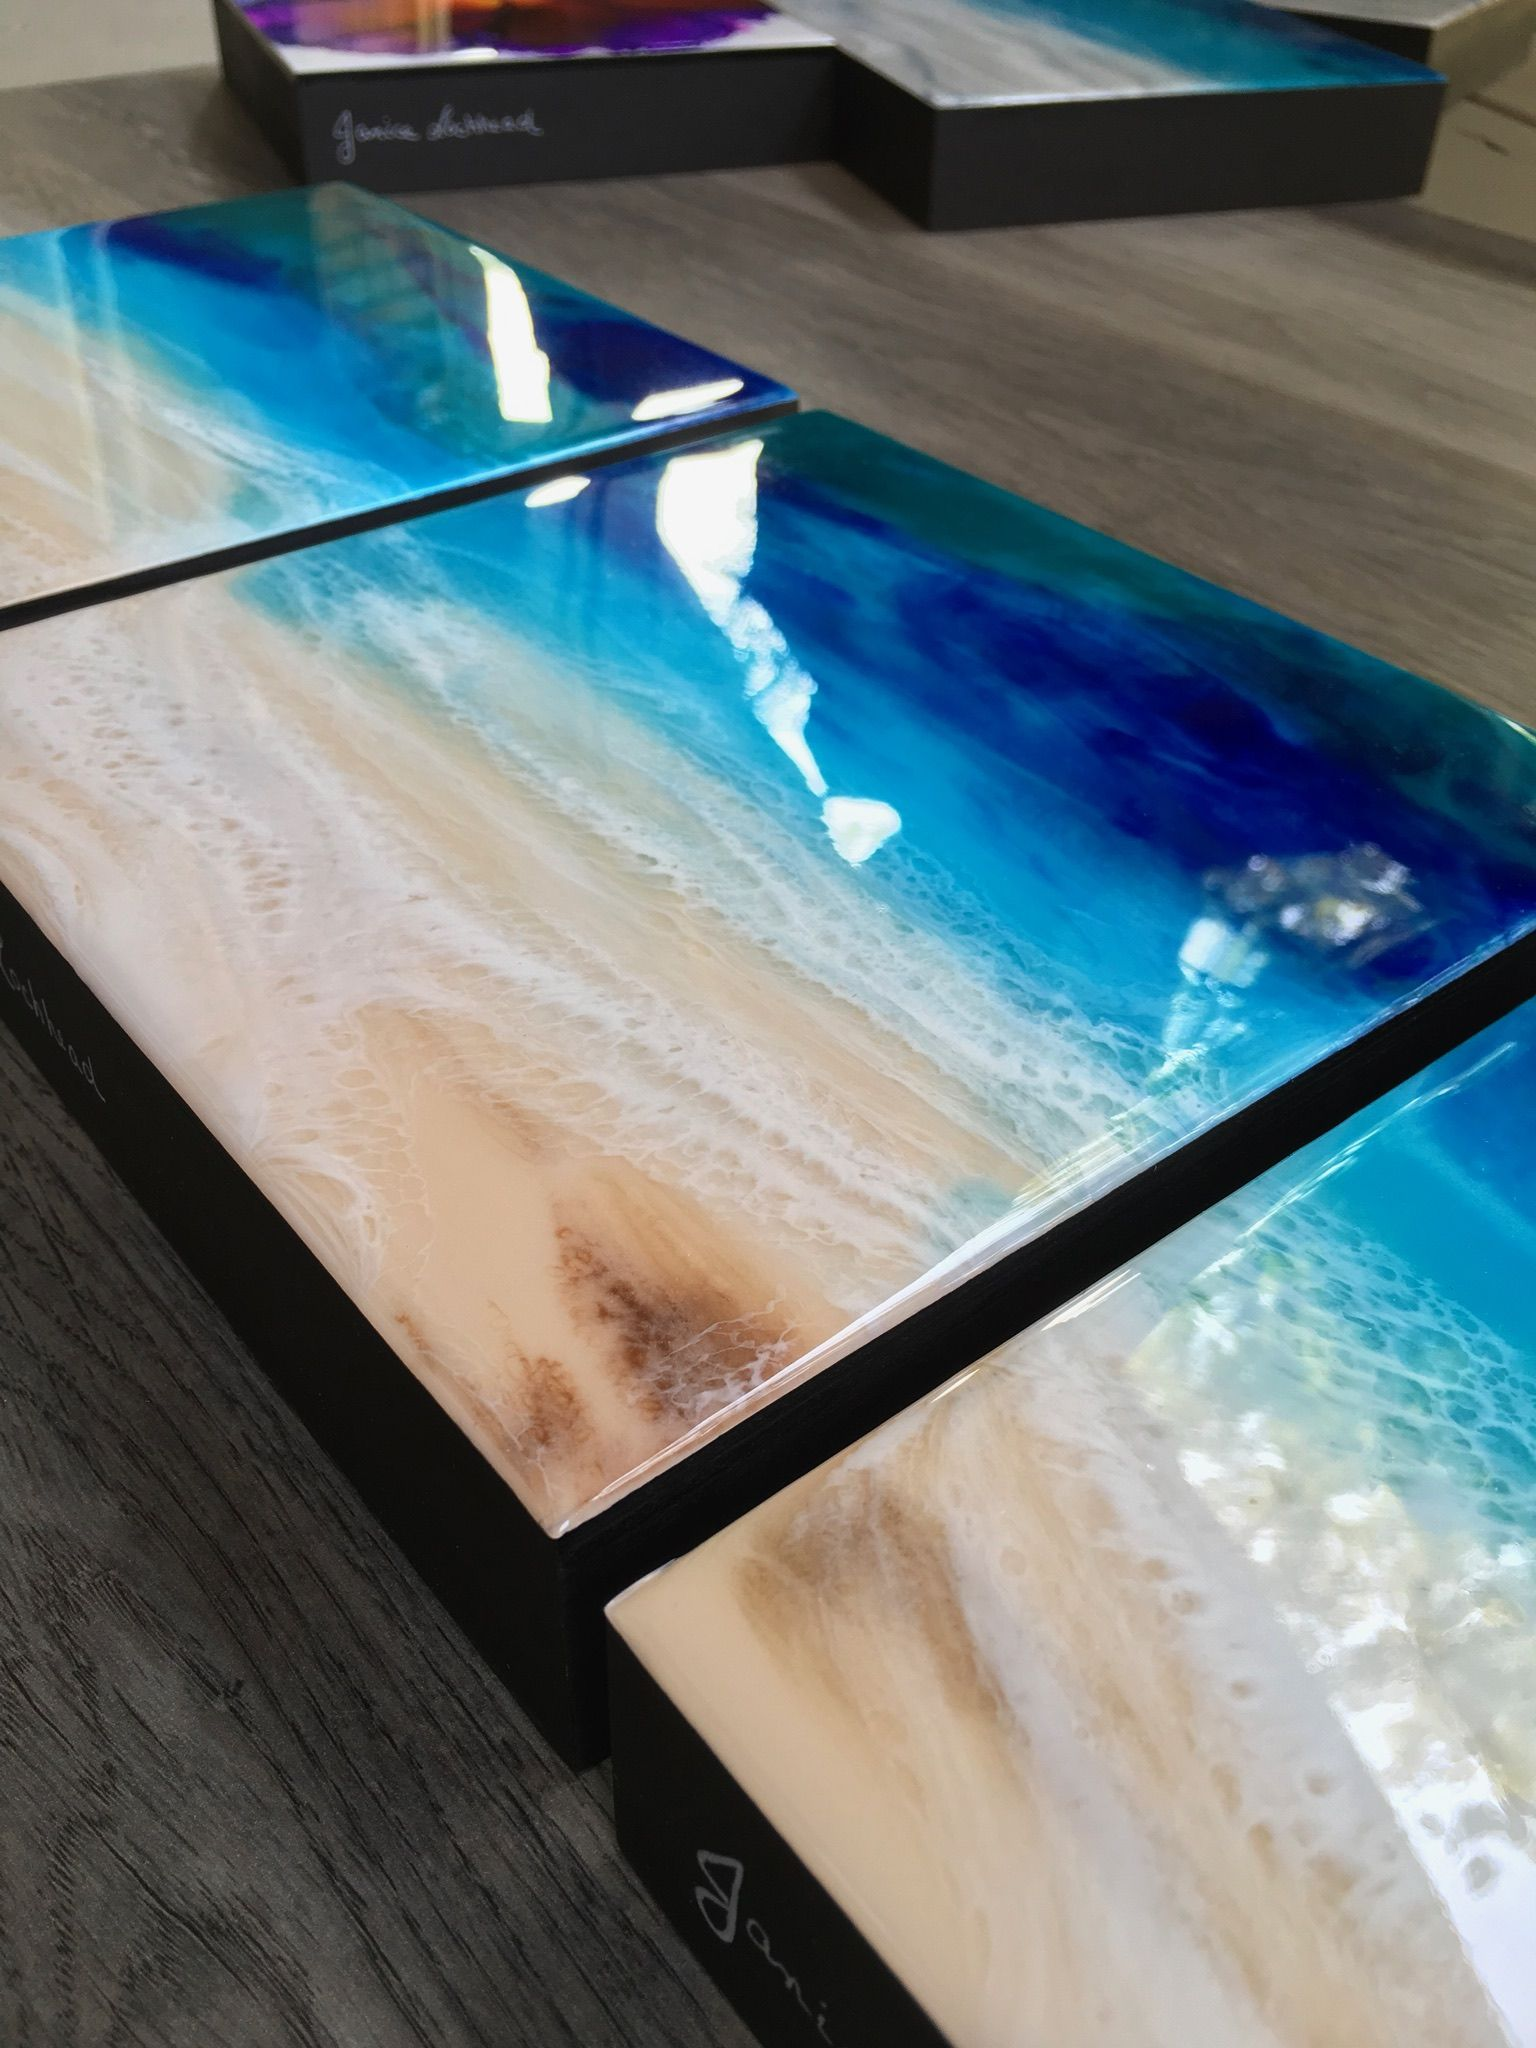 Pin by Denise Dempsey on art: acrylics  in 2019   Epoxy resin art